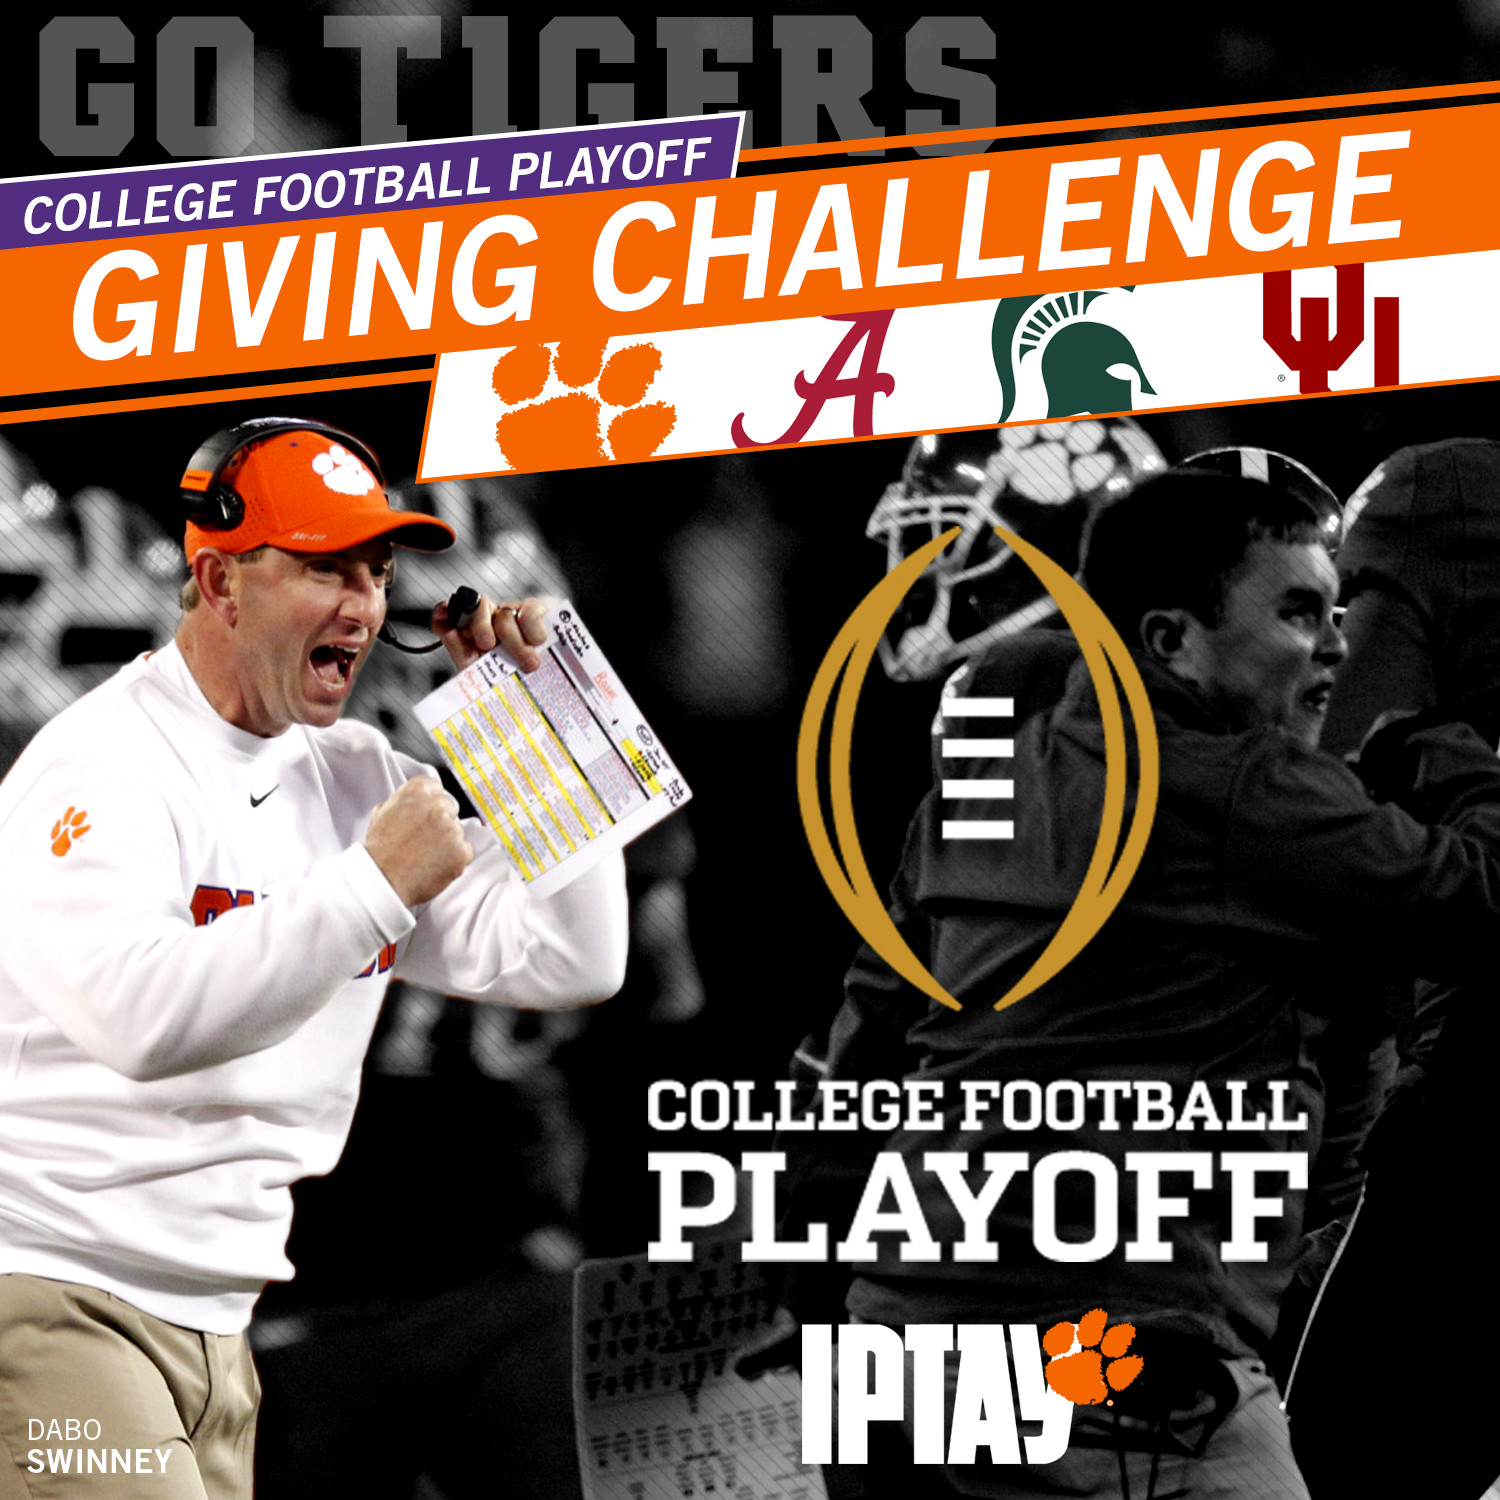 Giving Challenge Announced For College Football Playoff